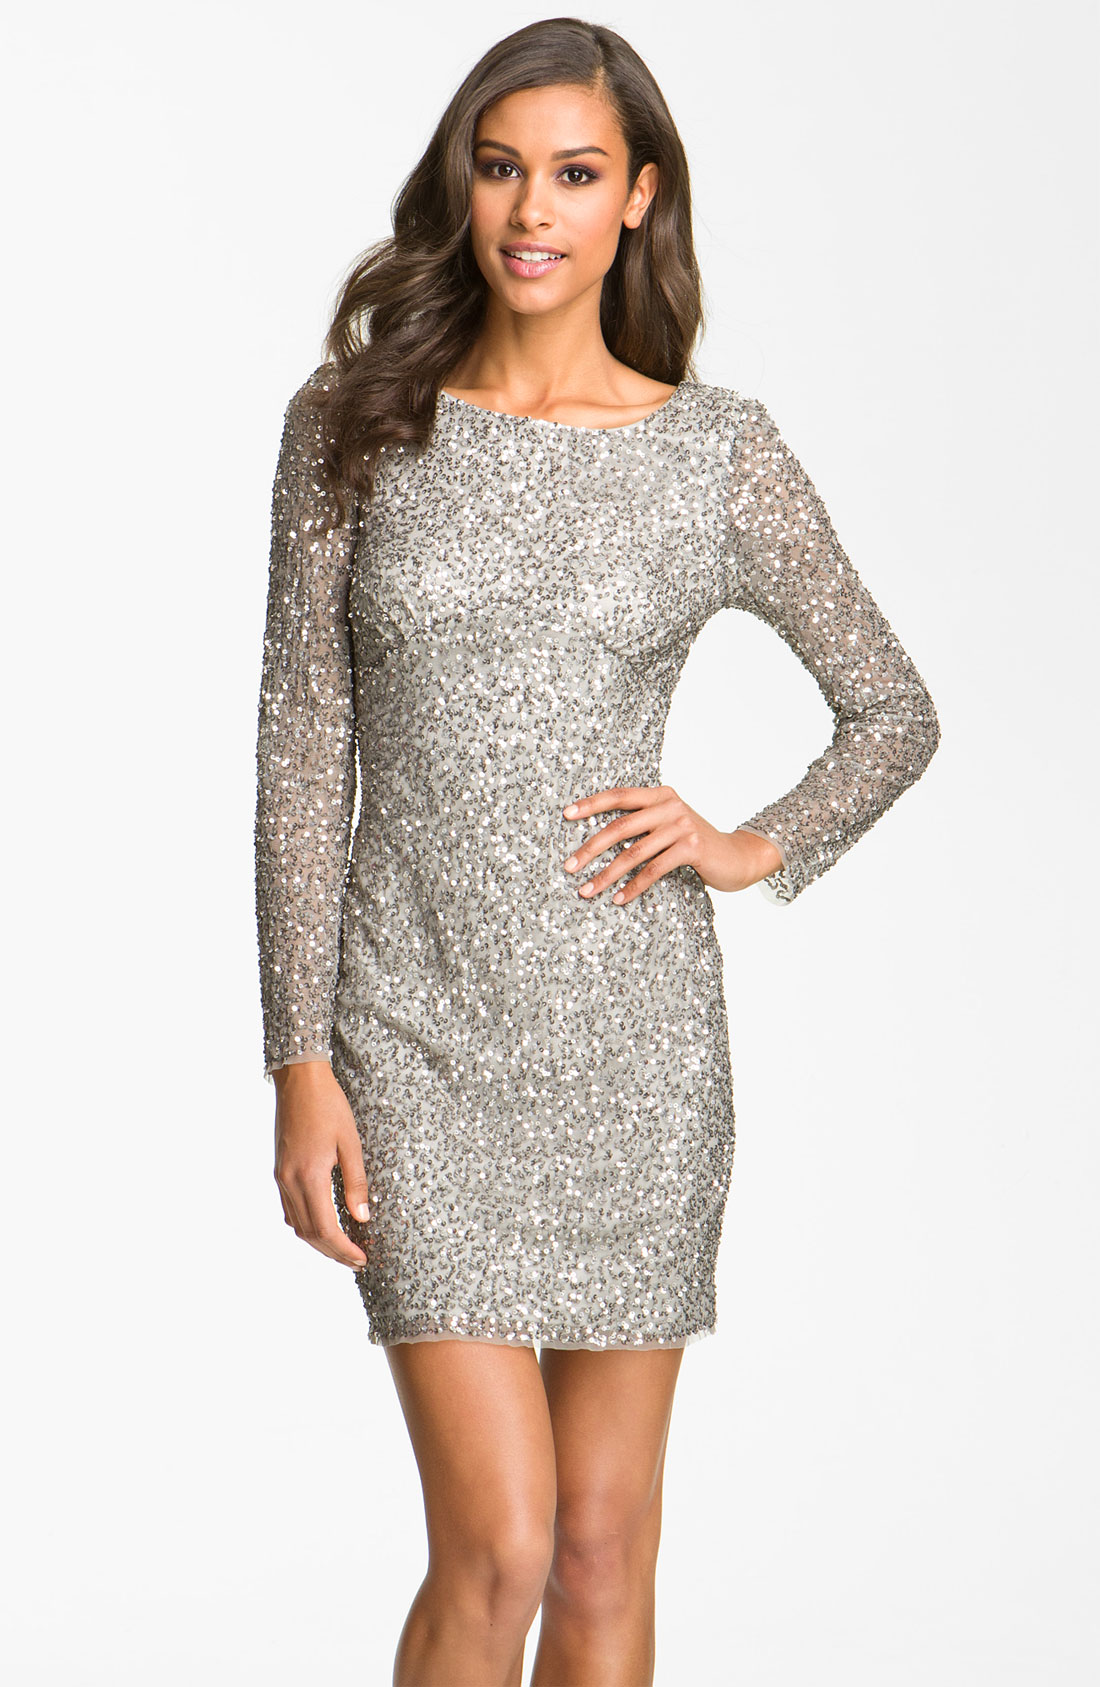 Long sleeve metallic silver sequin dress